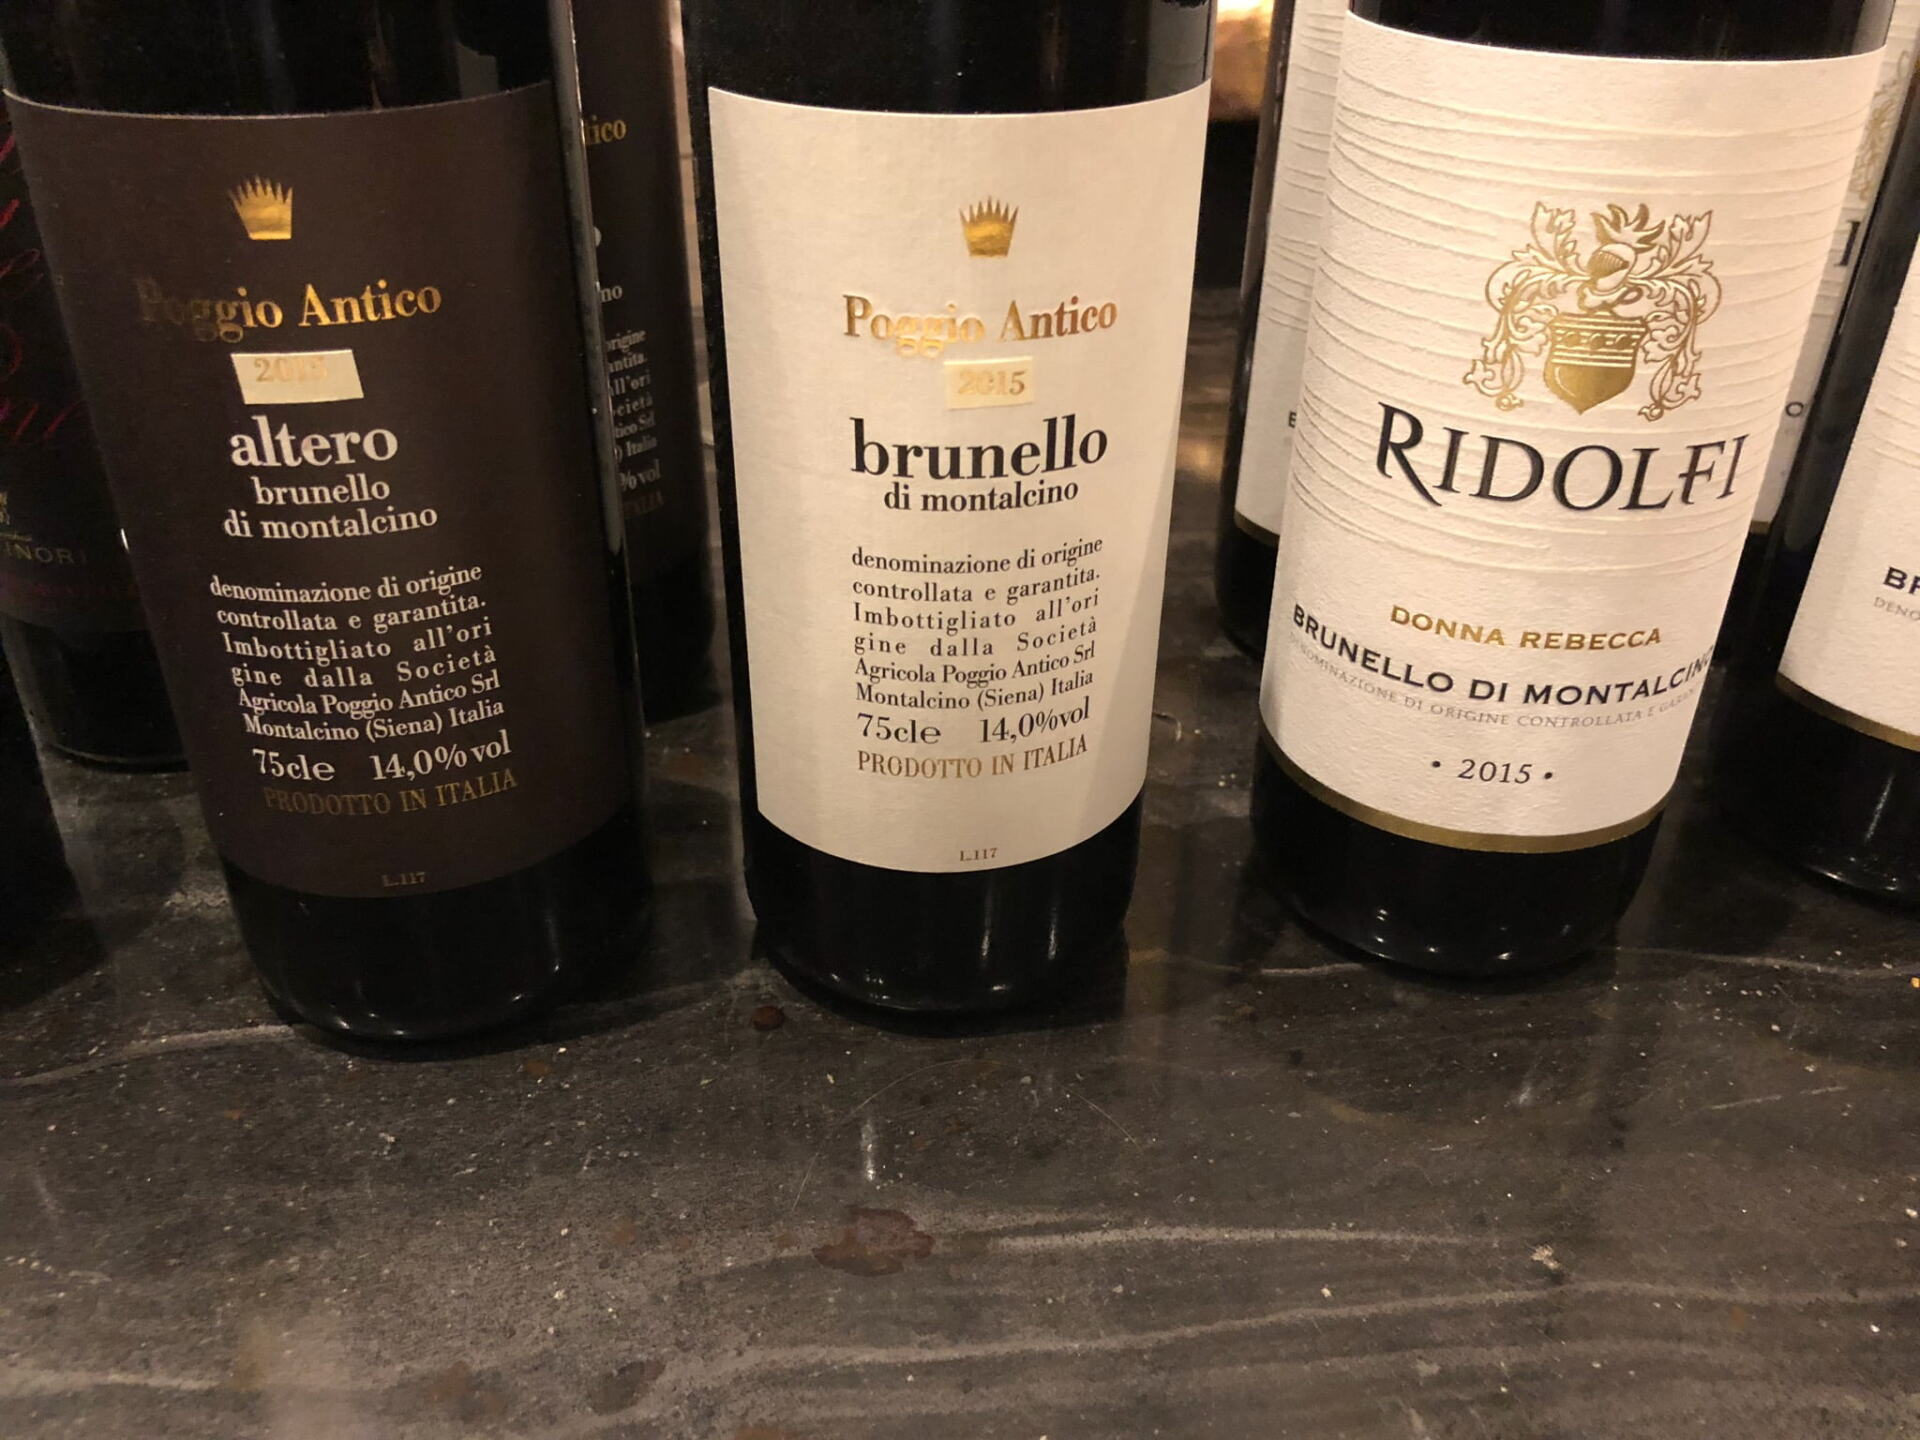 Three bottles of Brunello